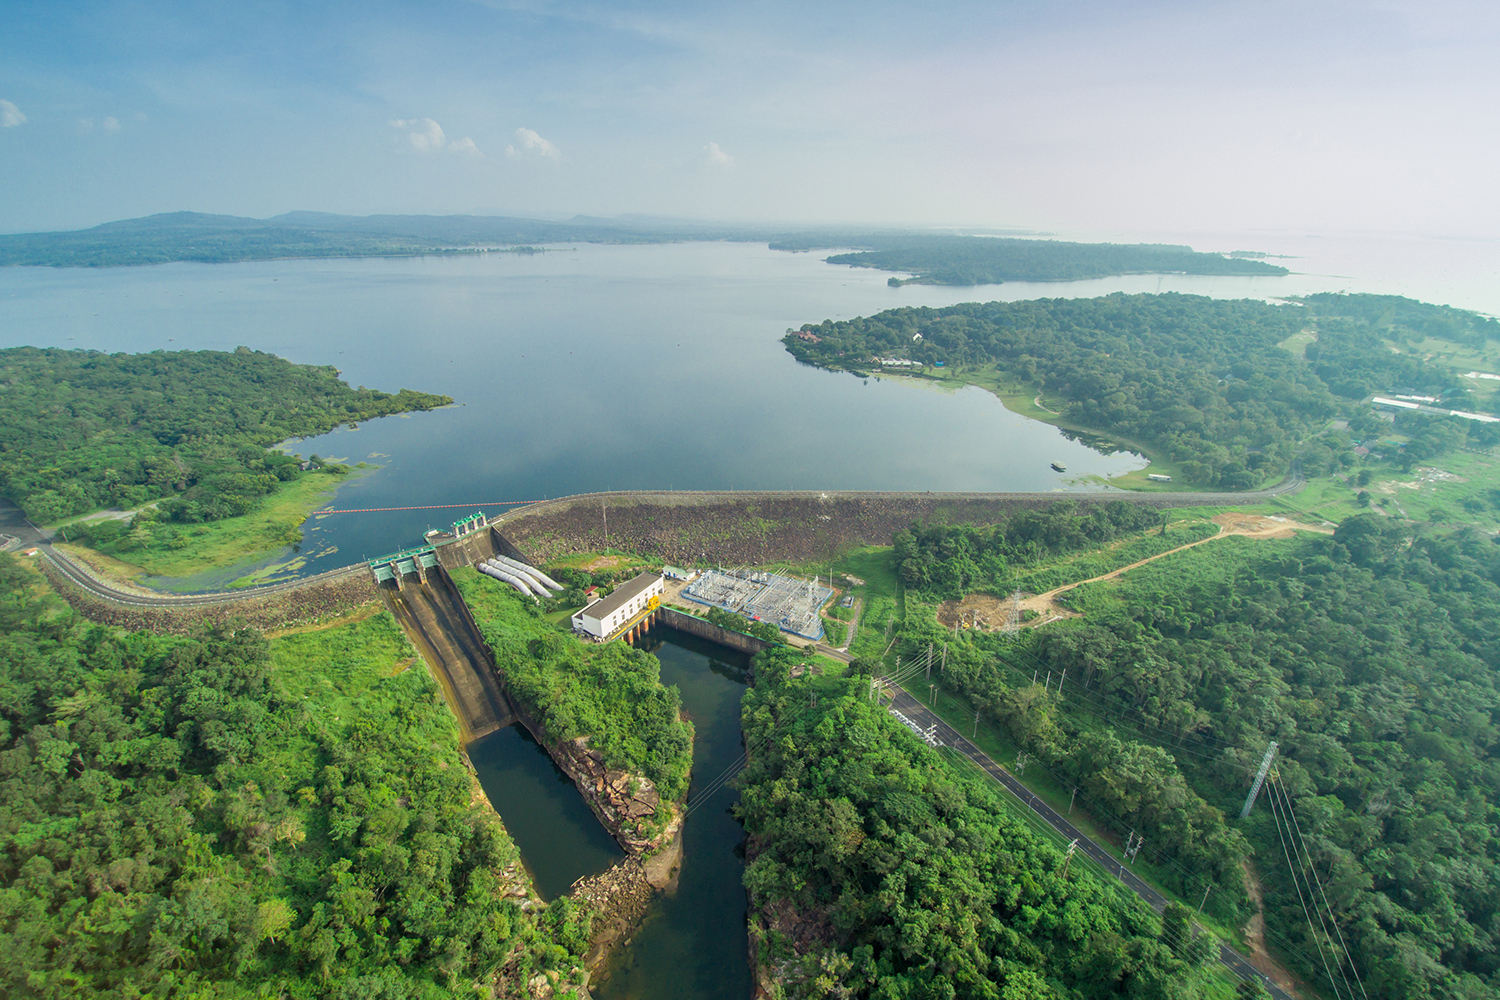 Sirindhorn Dam in Ubon Ratchathani is a pilot project of the Electricity Generating Authority of Thailand to develop the world's largest power generation from floating solar panels that will generate electricity at 45 megawatts and 36-MW hydro power plant. (Egat photo)